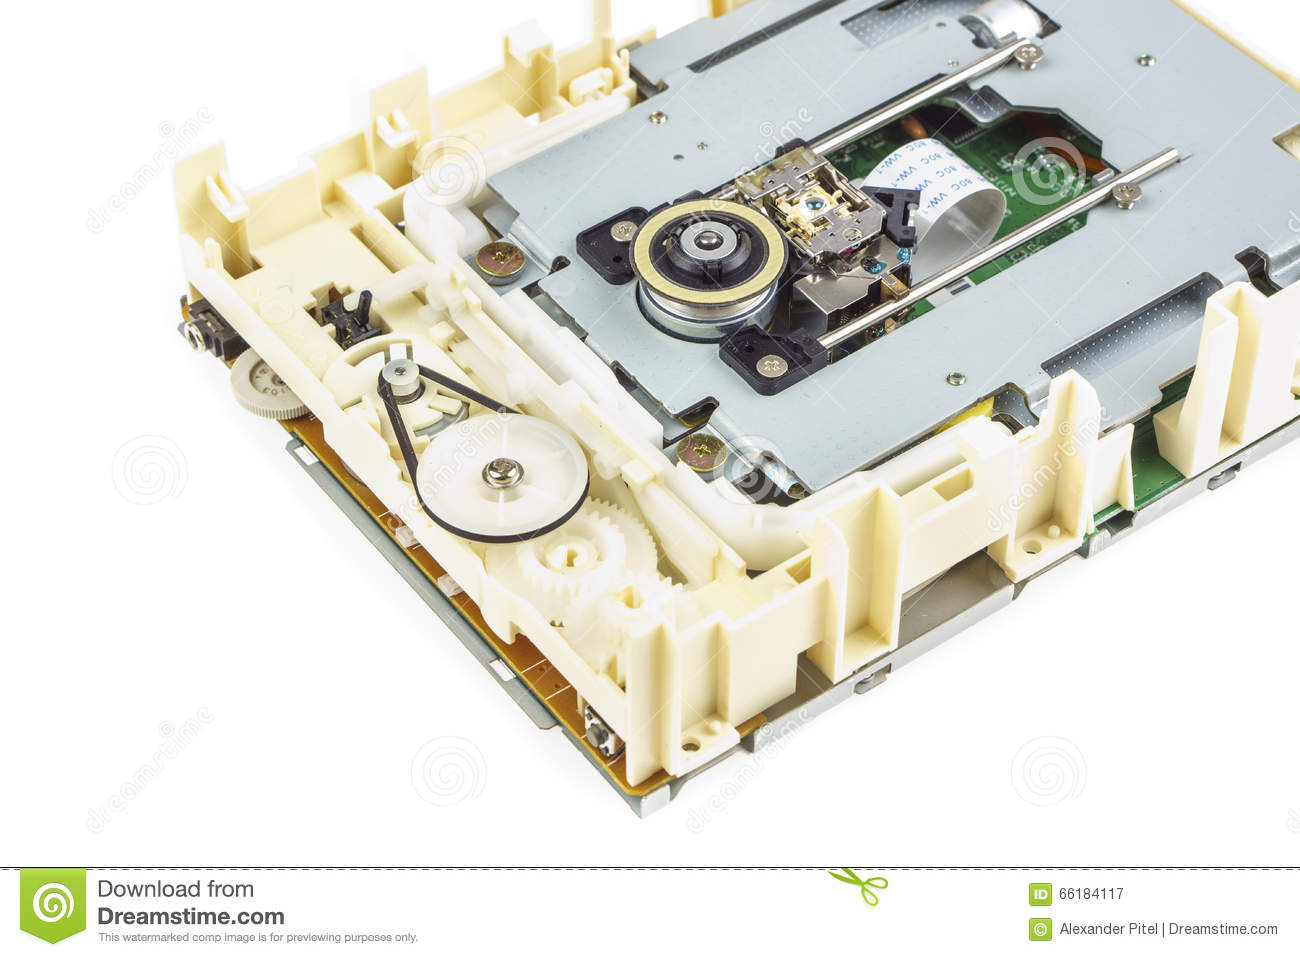 Computer Cd Rom Drive Disassembled 03 Stock Image